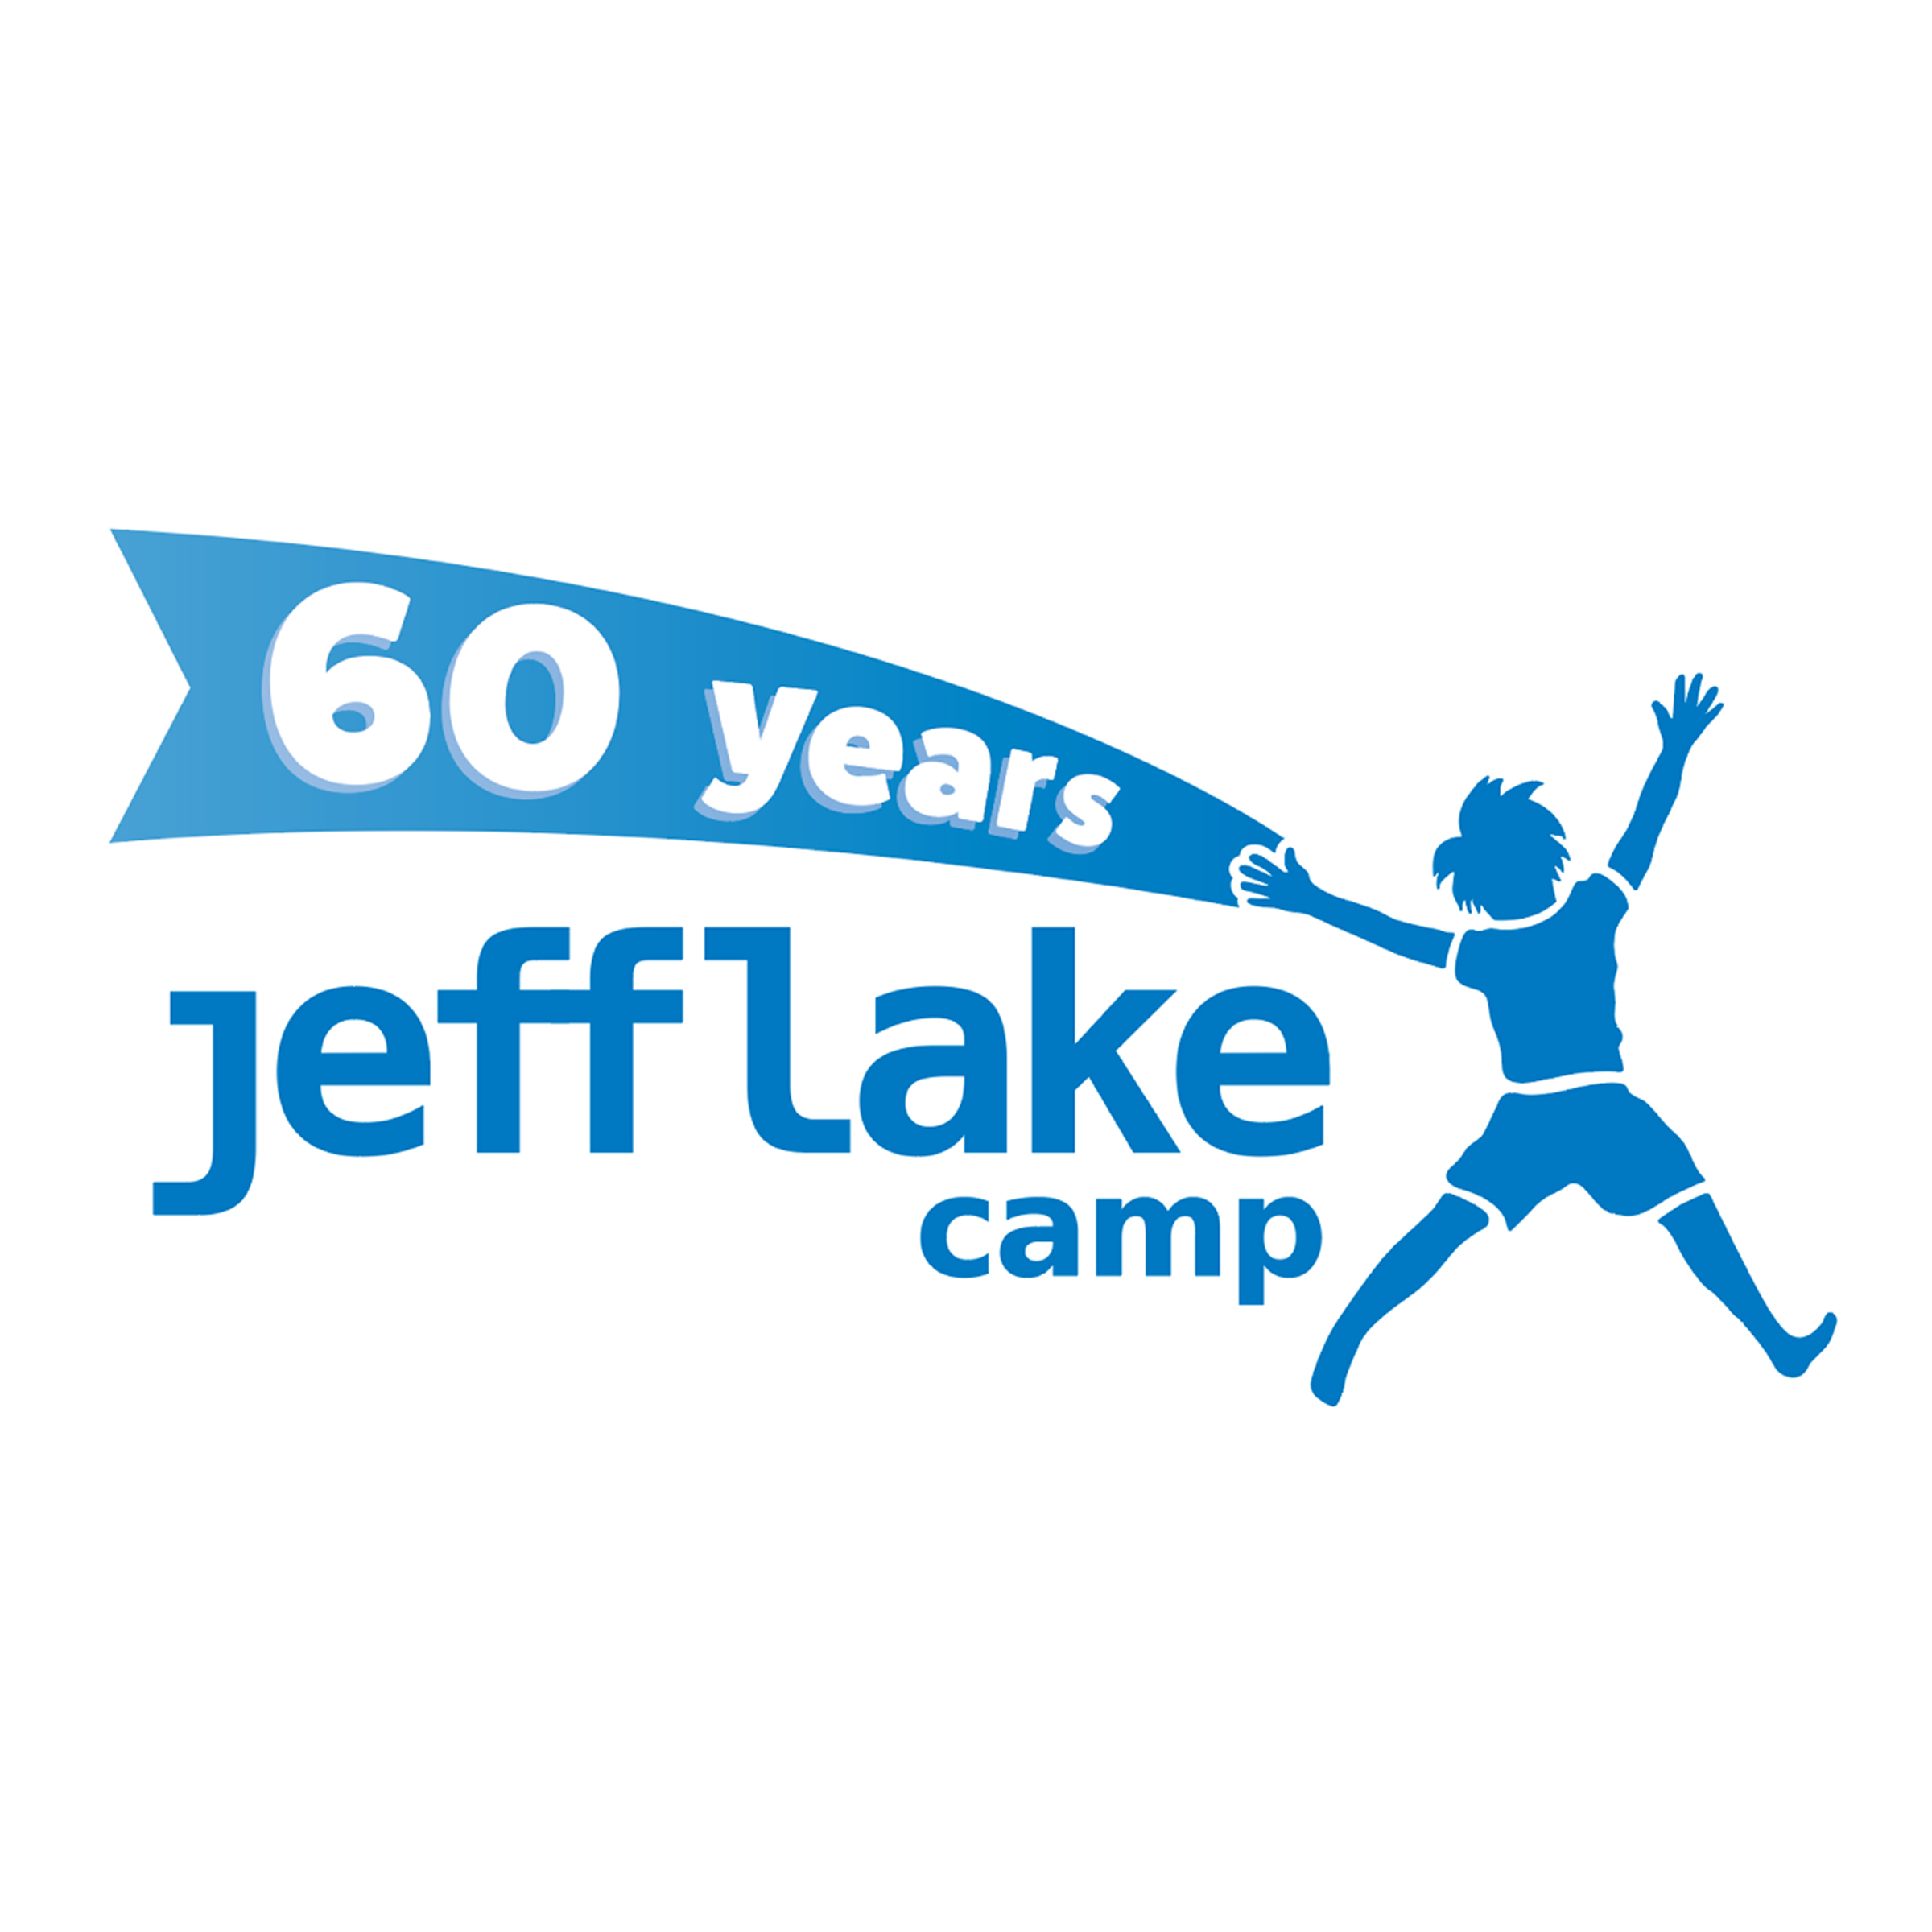 Jeff Lake Camp